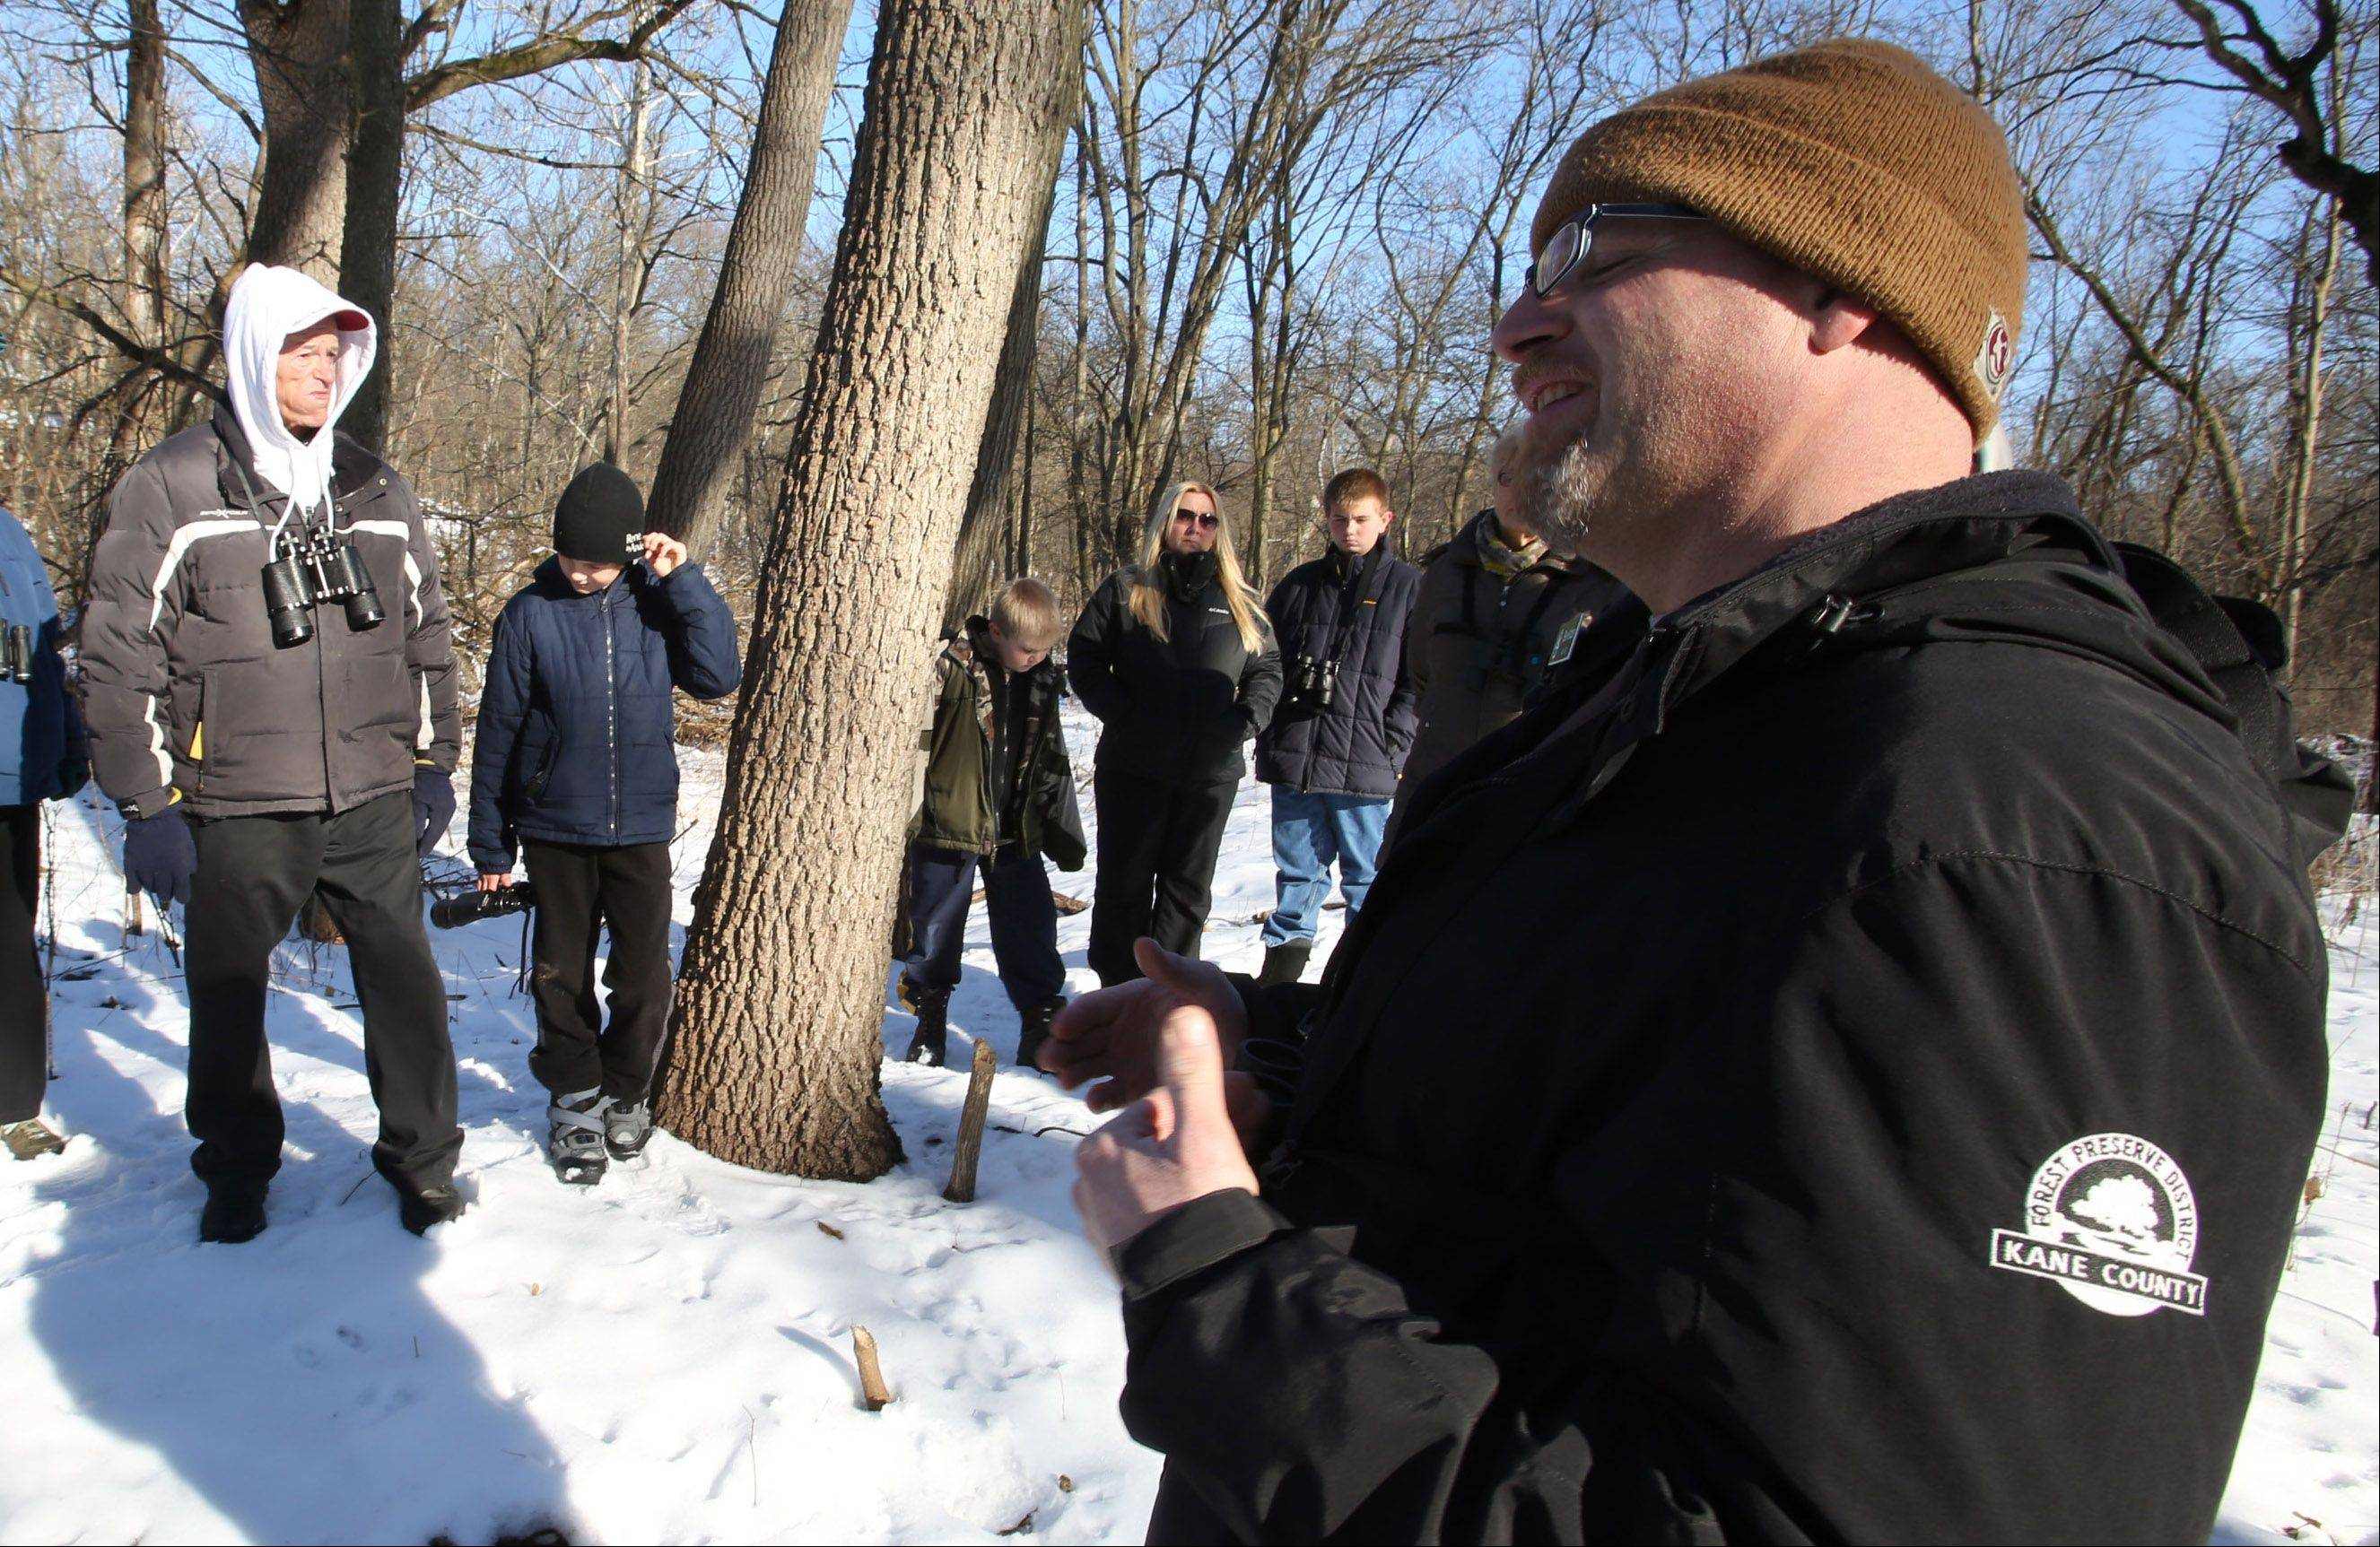 Kane County Forest Preserve naturalist Ben Katzen gives tips on how to spot birds in the winter at Creek Bend Nature Center during a Winter Birds program on Saturday in St. Charles.